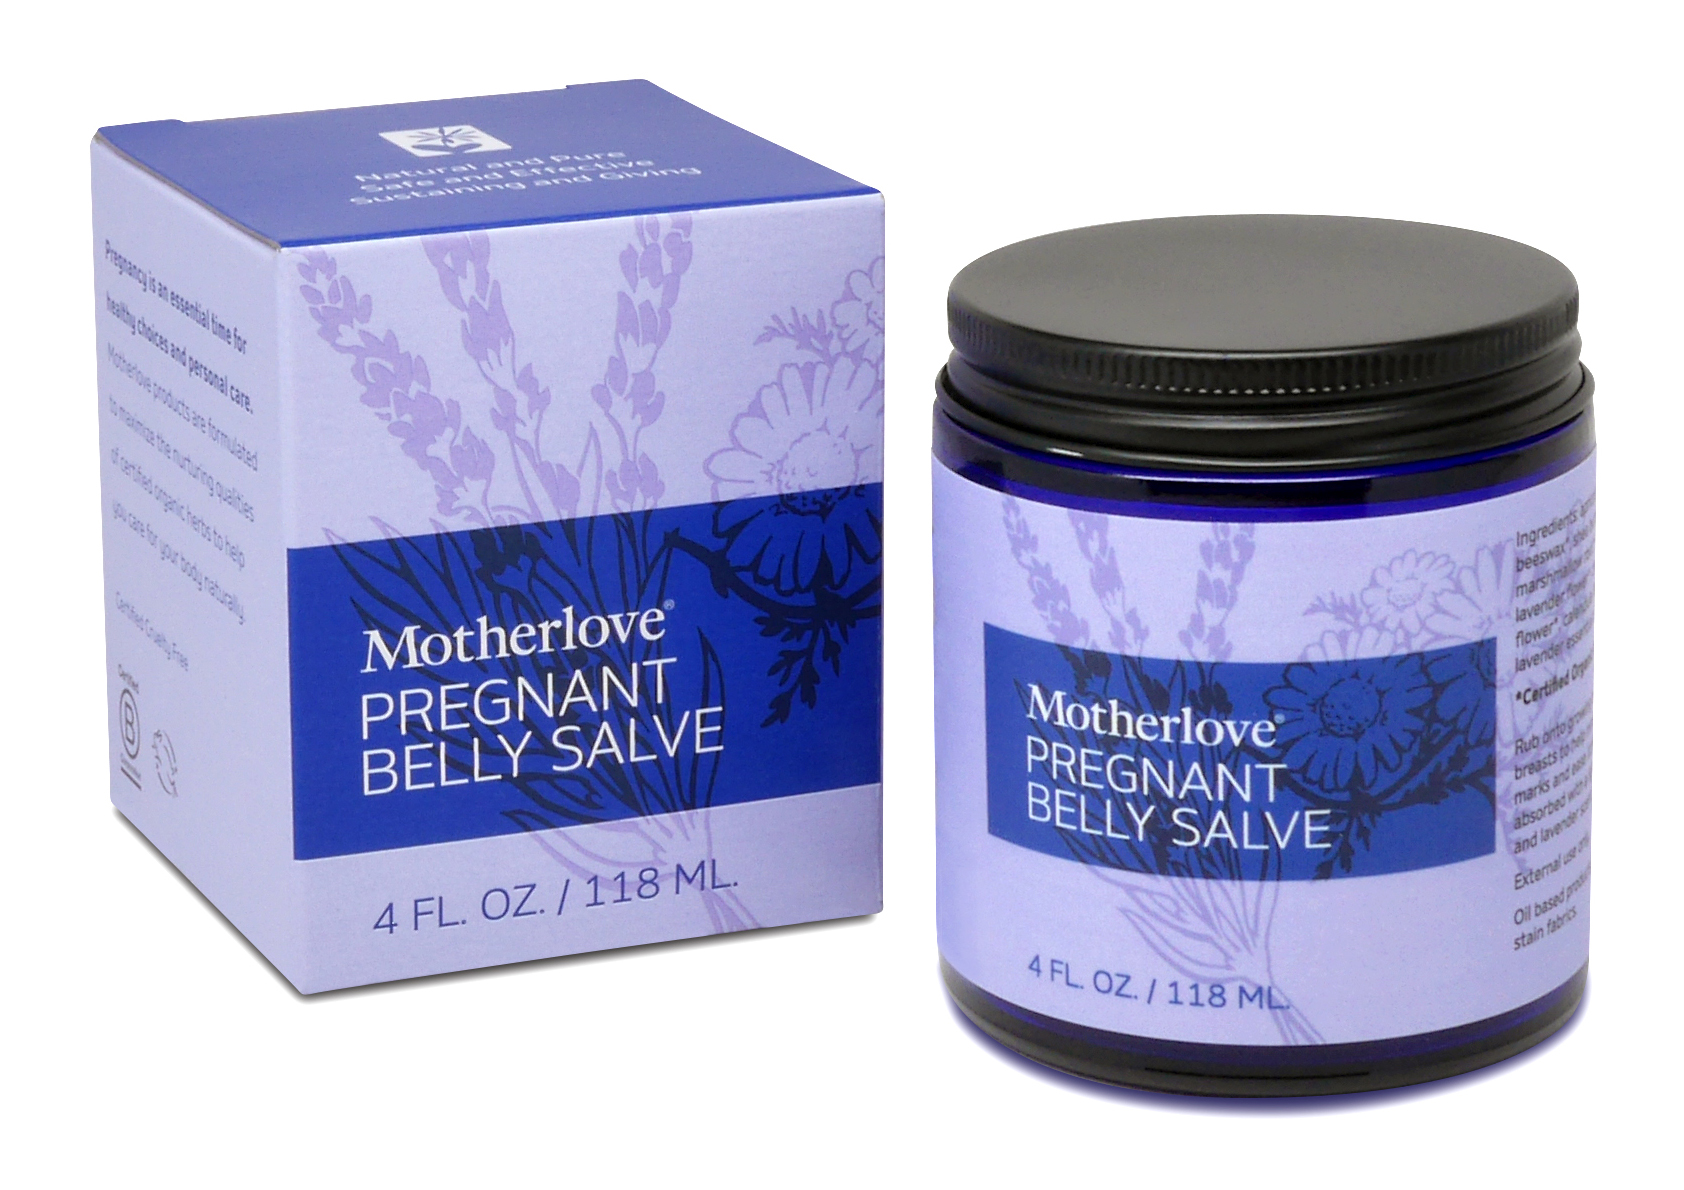 motherlove-pregnant-belly-salve-jar-box.jpg